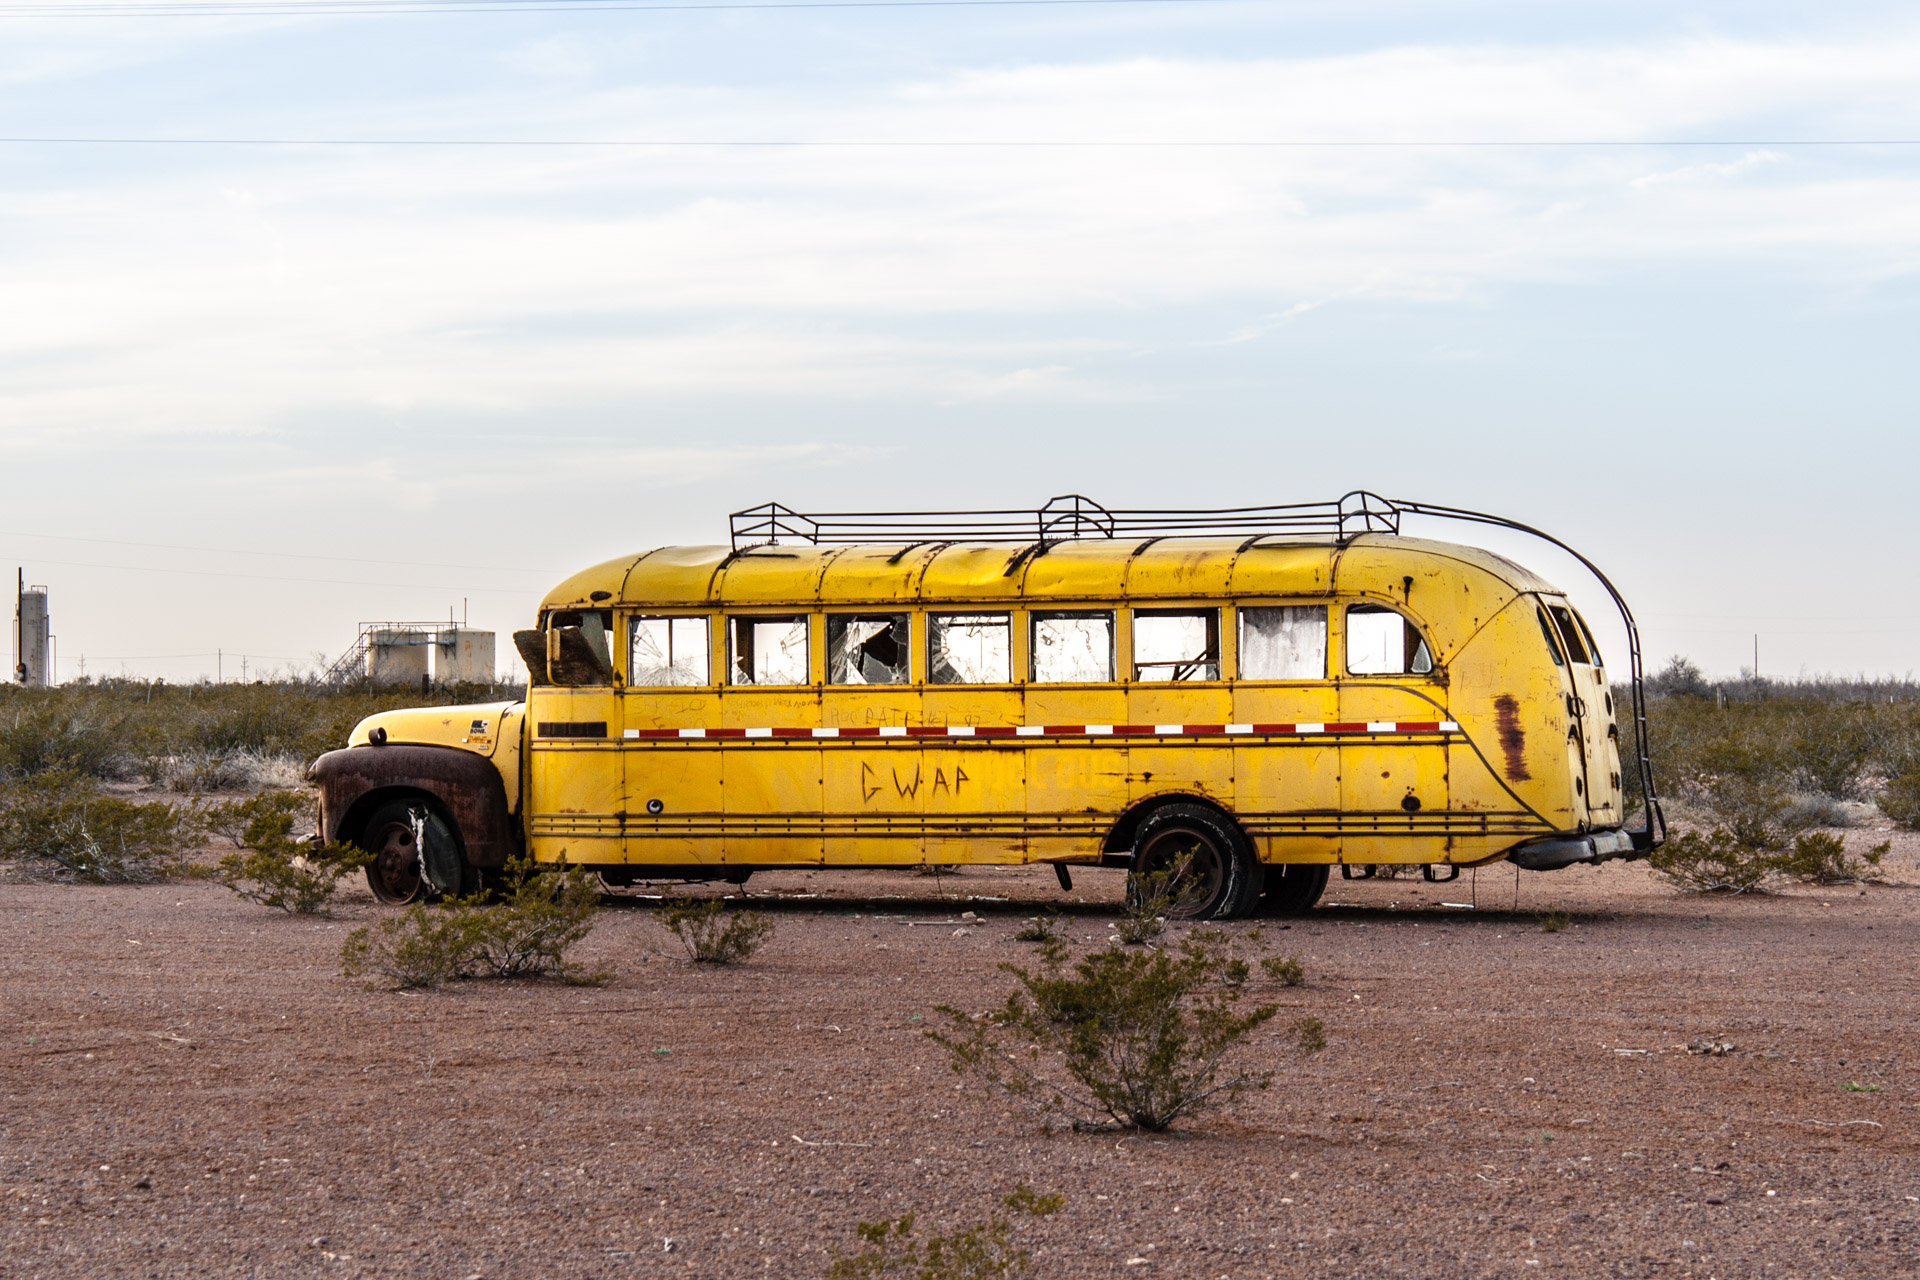 Deserted School Bus-Angle Close